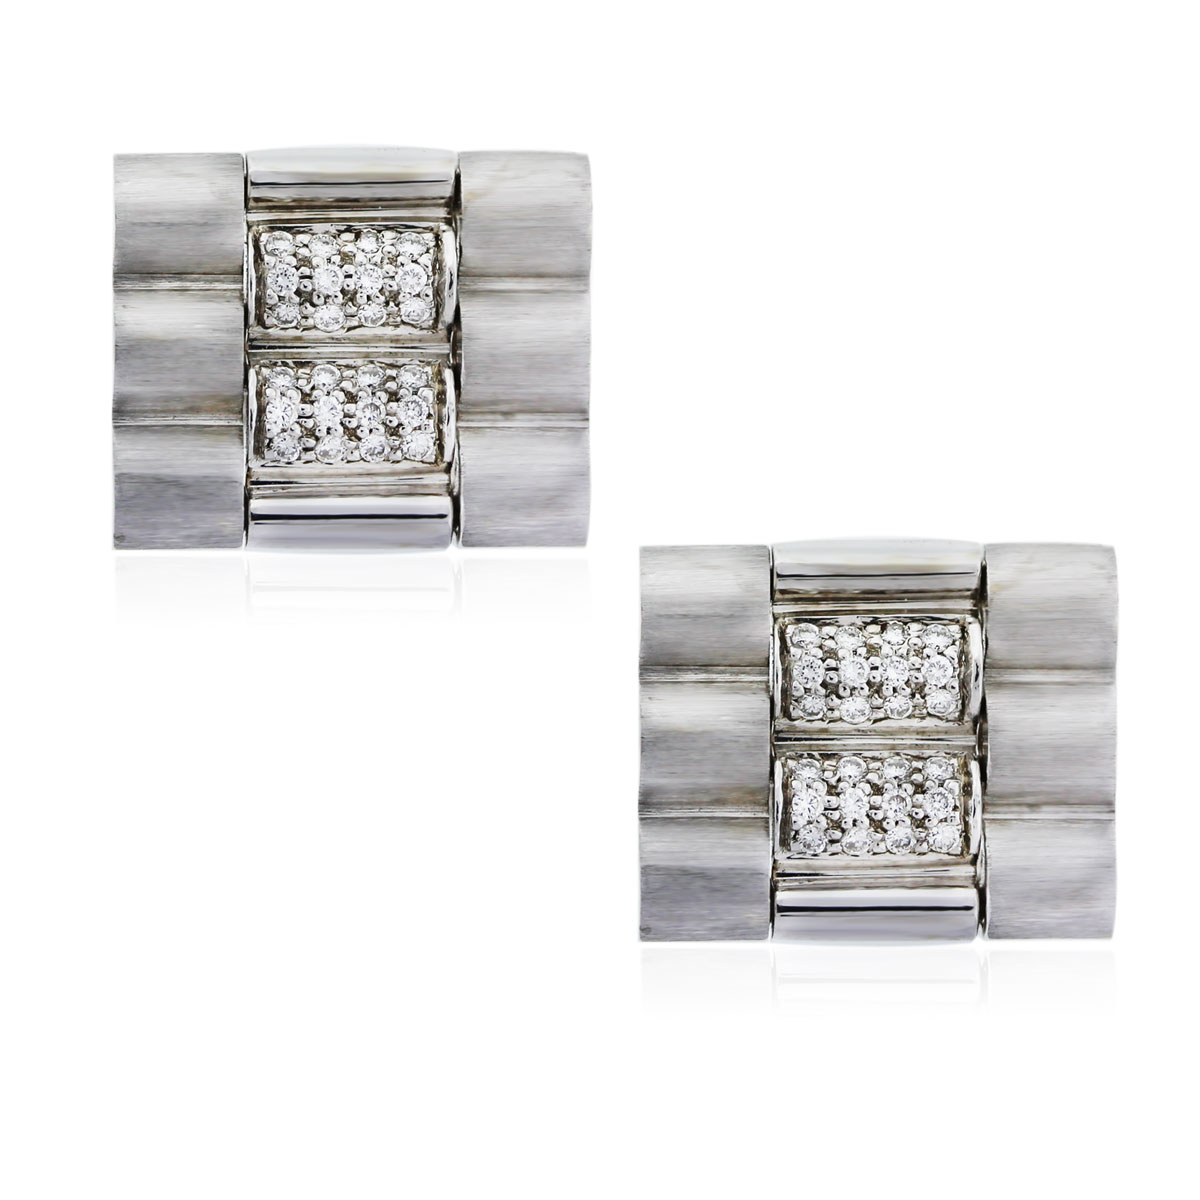 You are viewing these 14K White Gold and Diamond Mens Cufflinks!